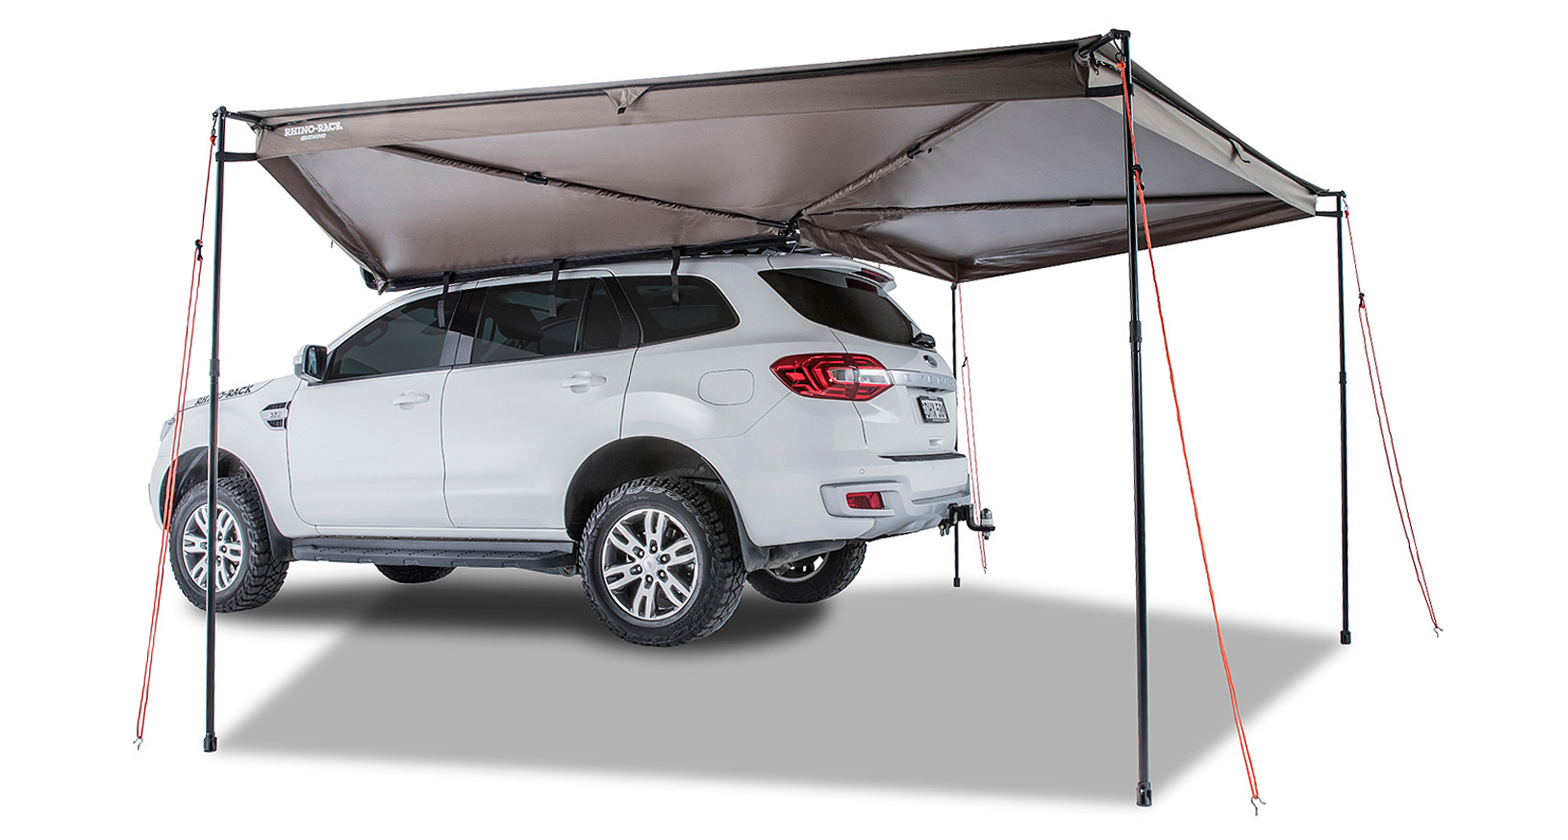 Rhino Rack Batwing Awning - Left Side - Free Shipping